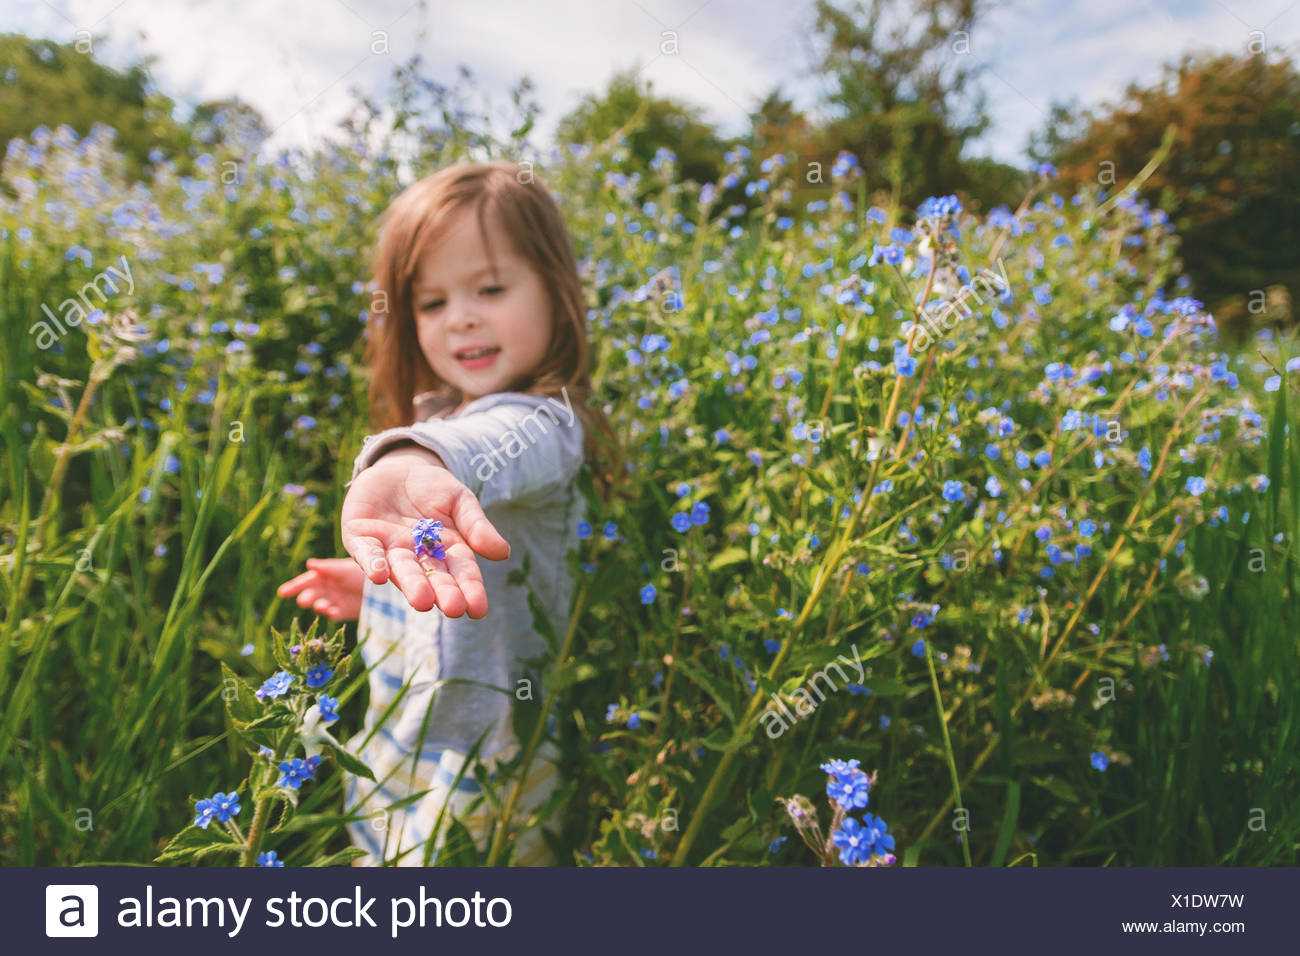 Girl holding a flower in the palm of her hand - Stock Image